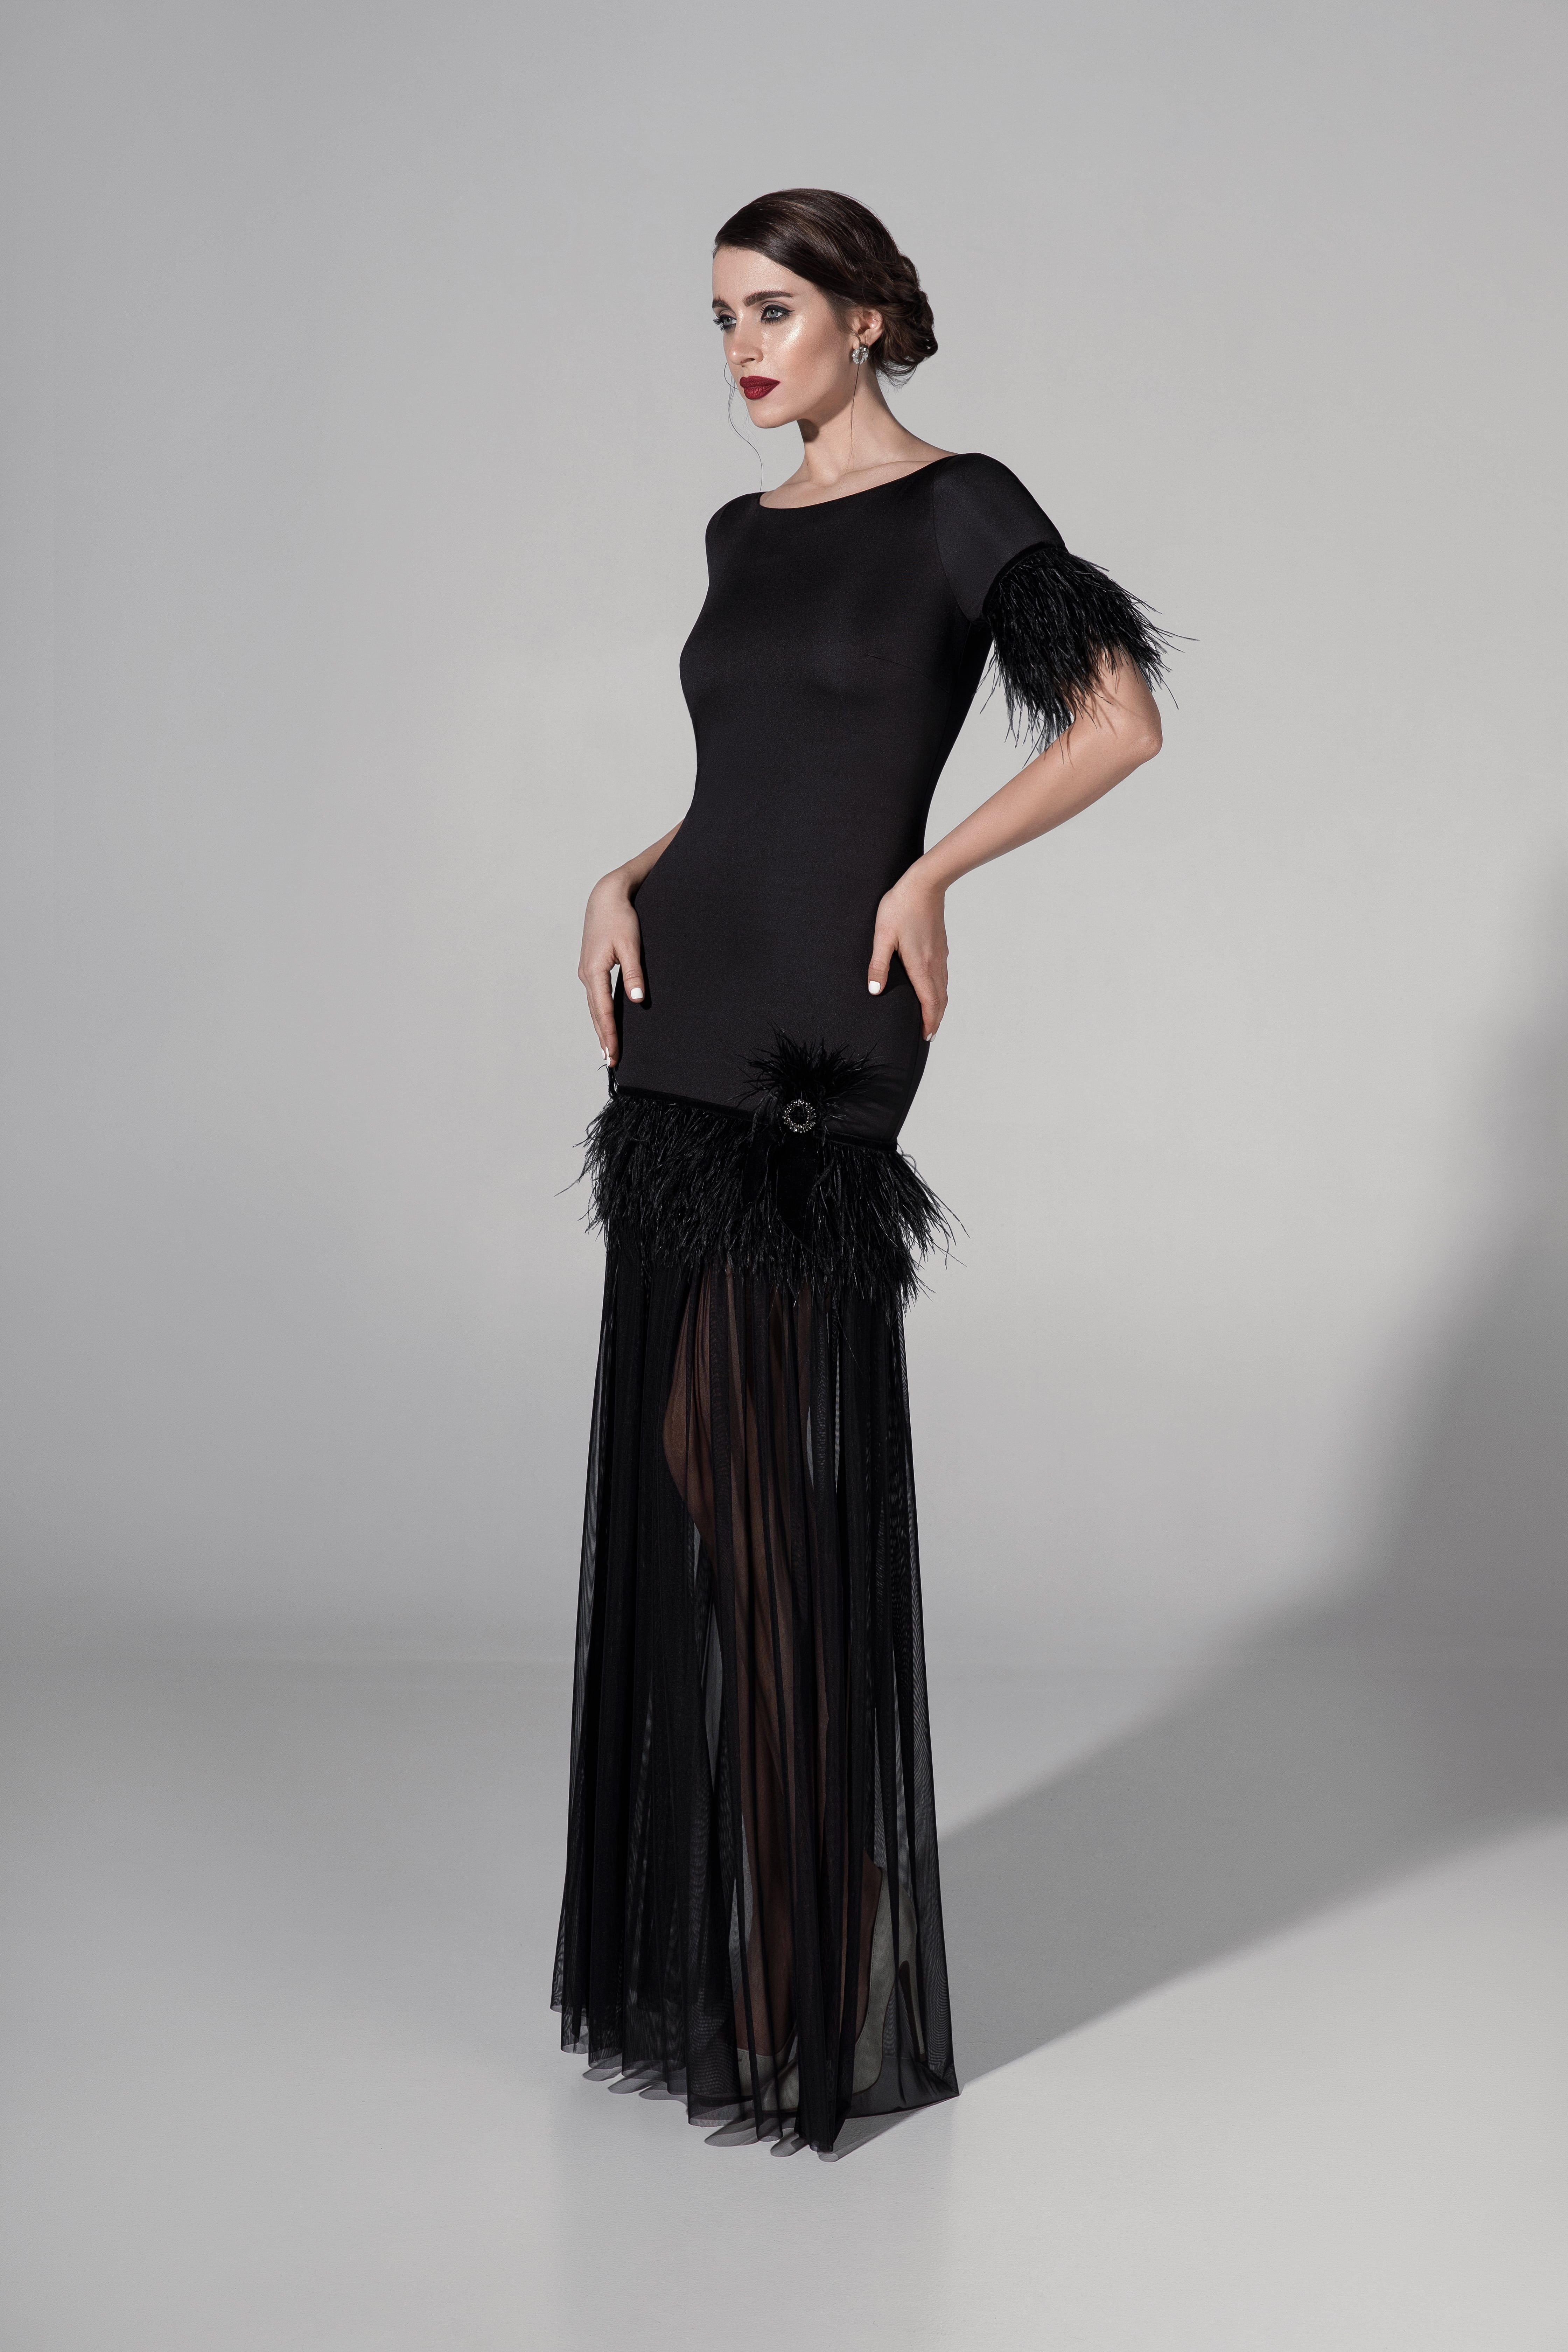 Black Feathers. Evening dress collection, Black feathers